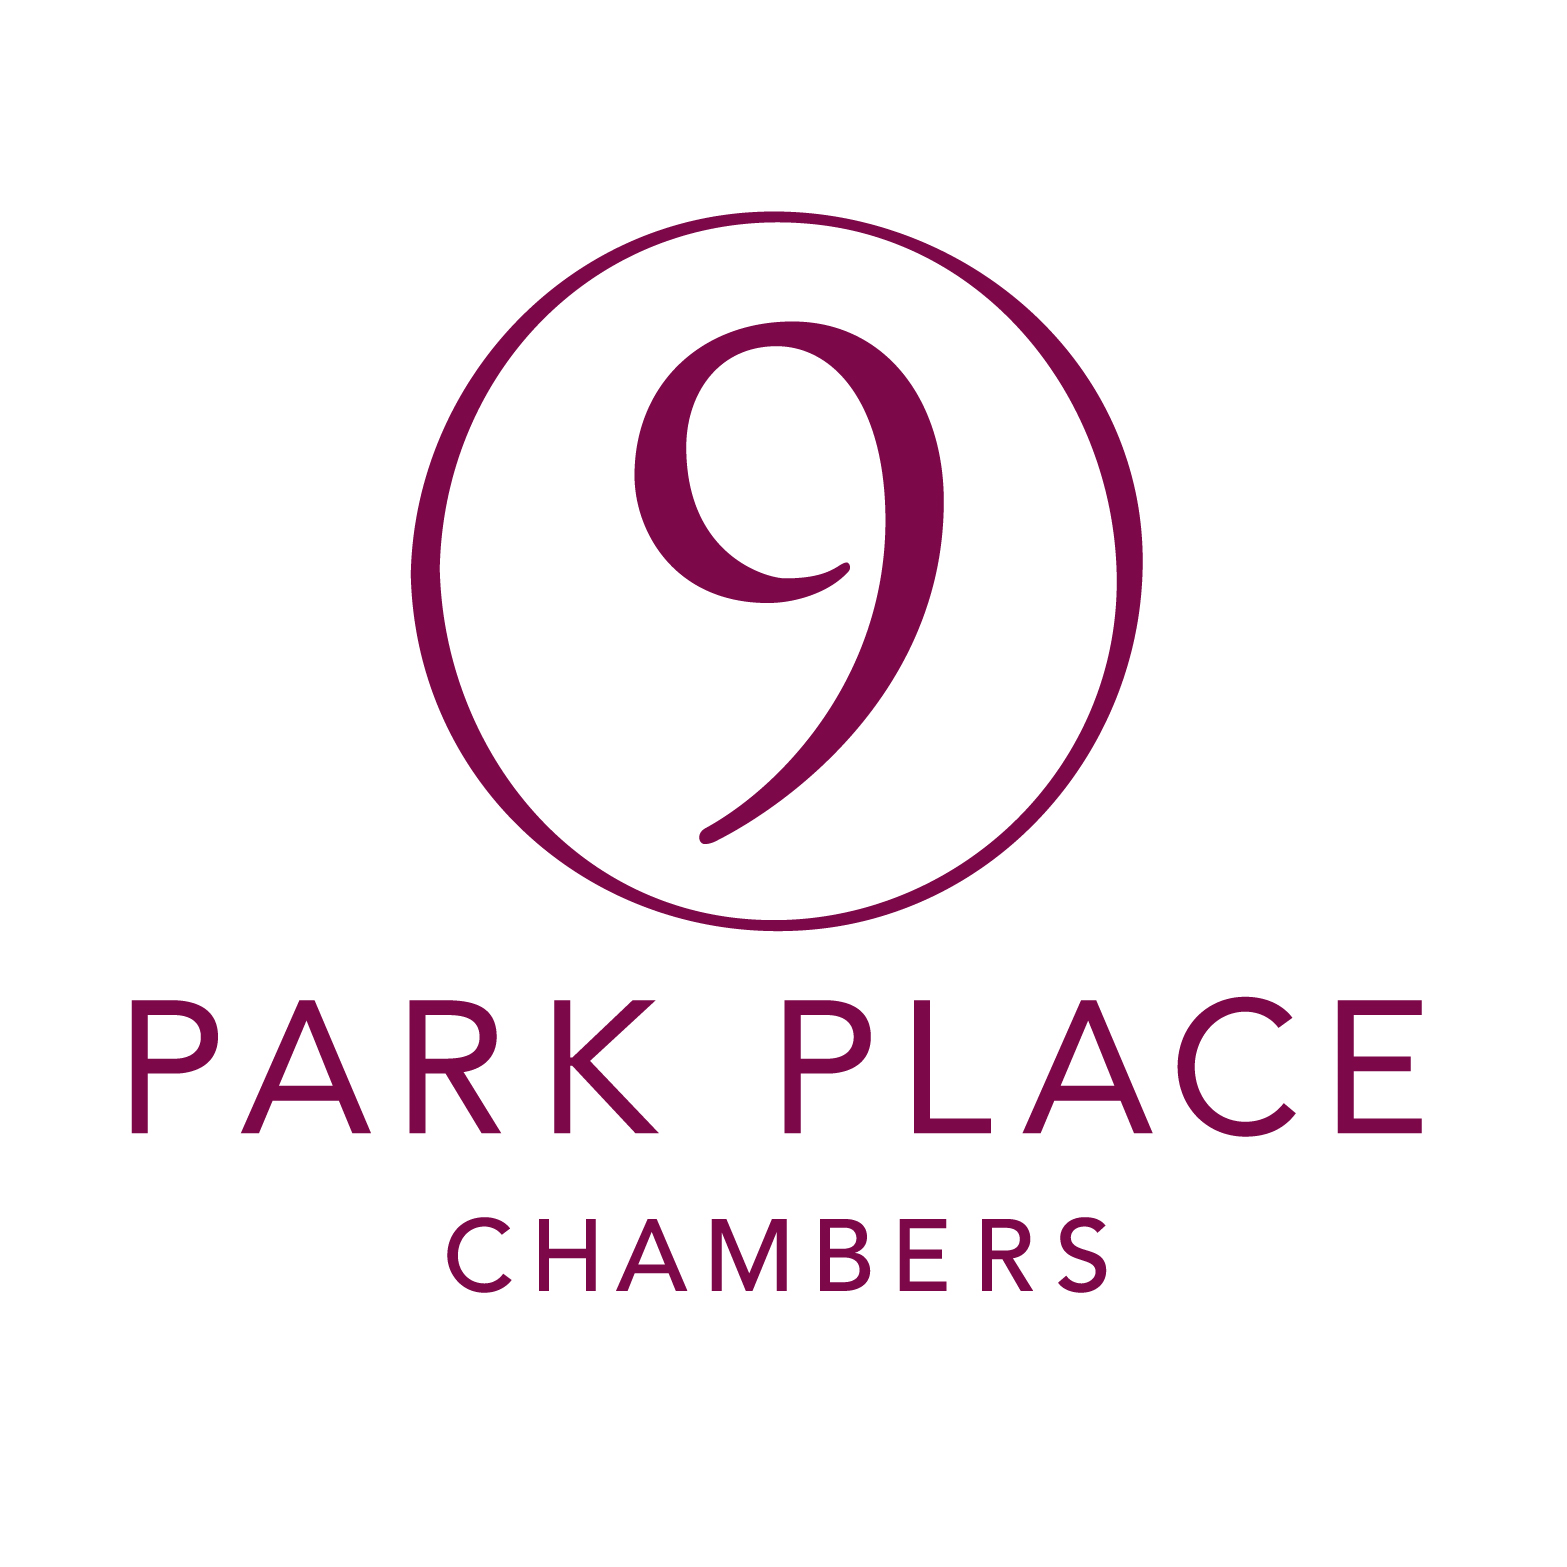 9 Park Place Chambers